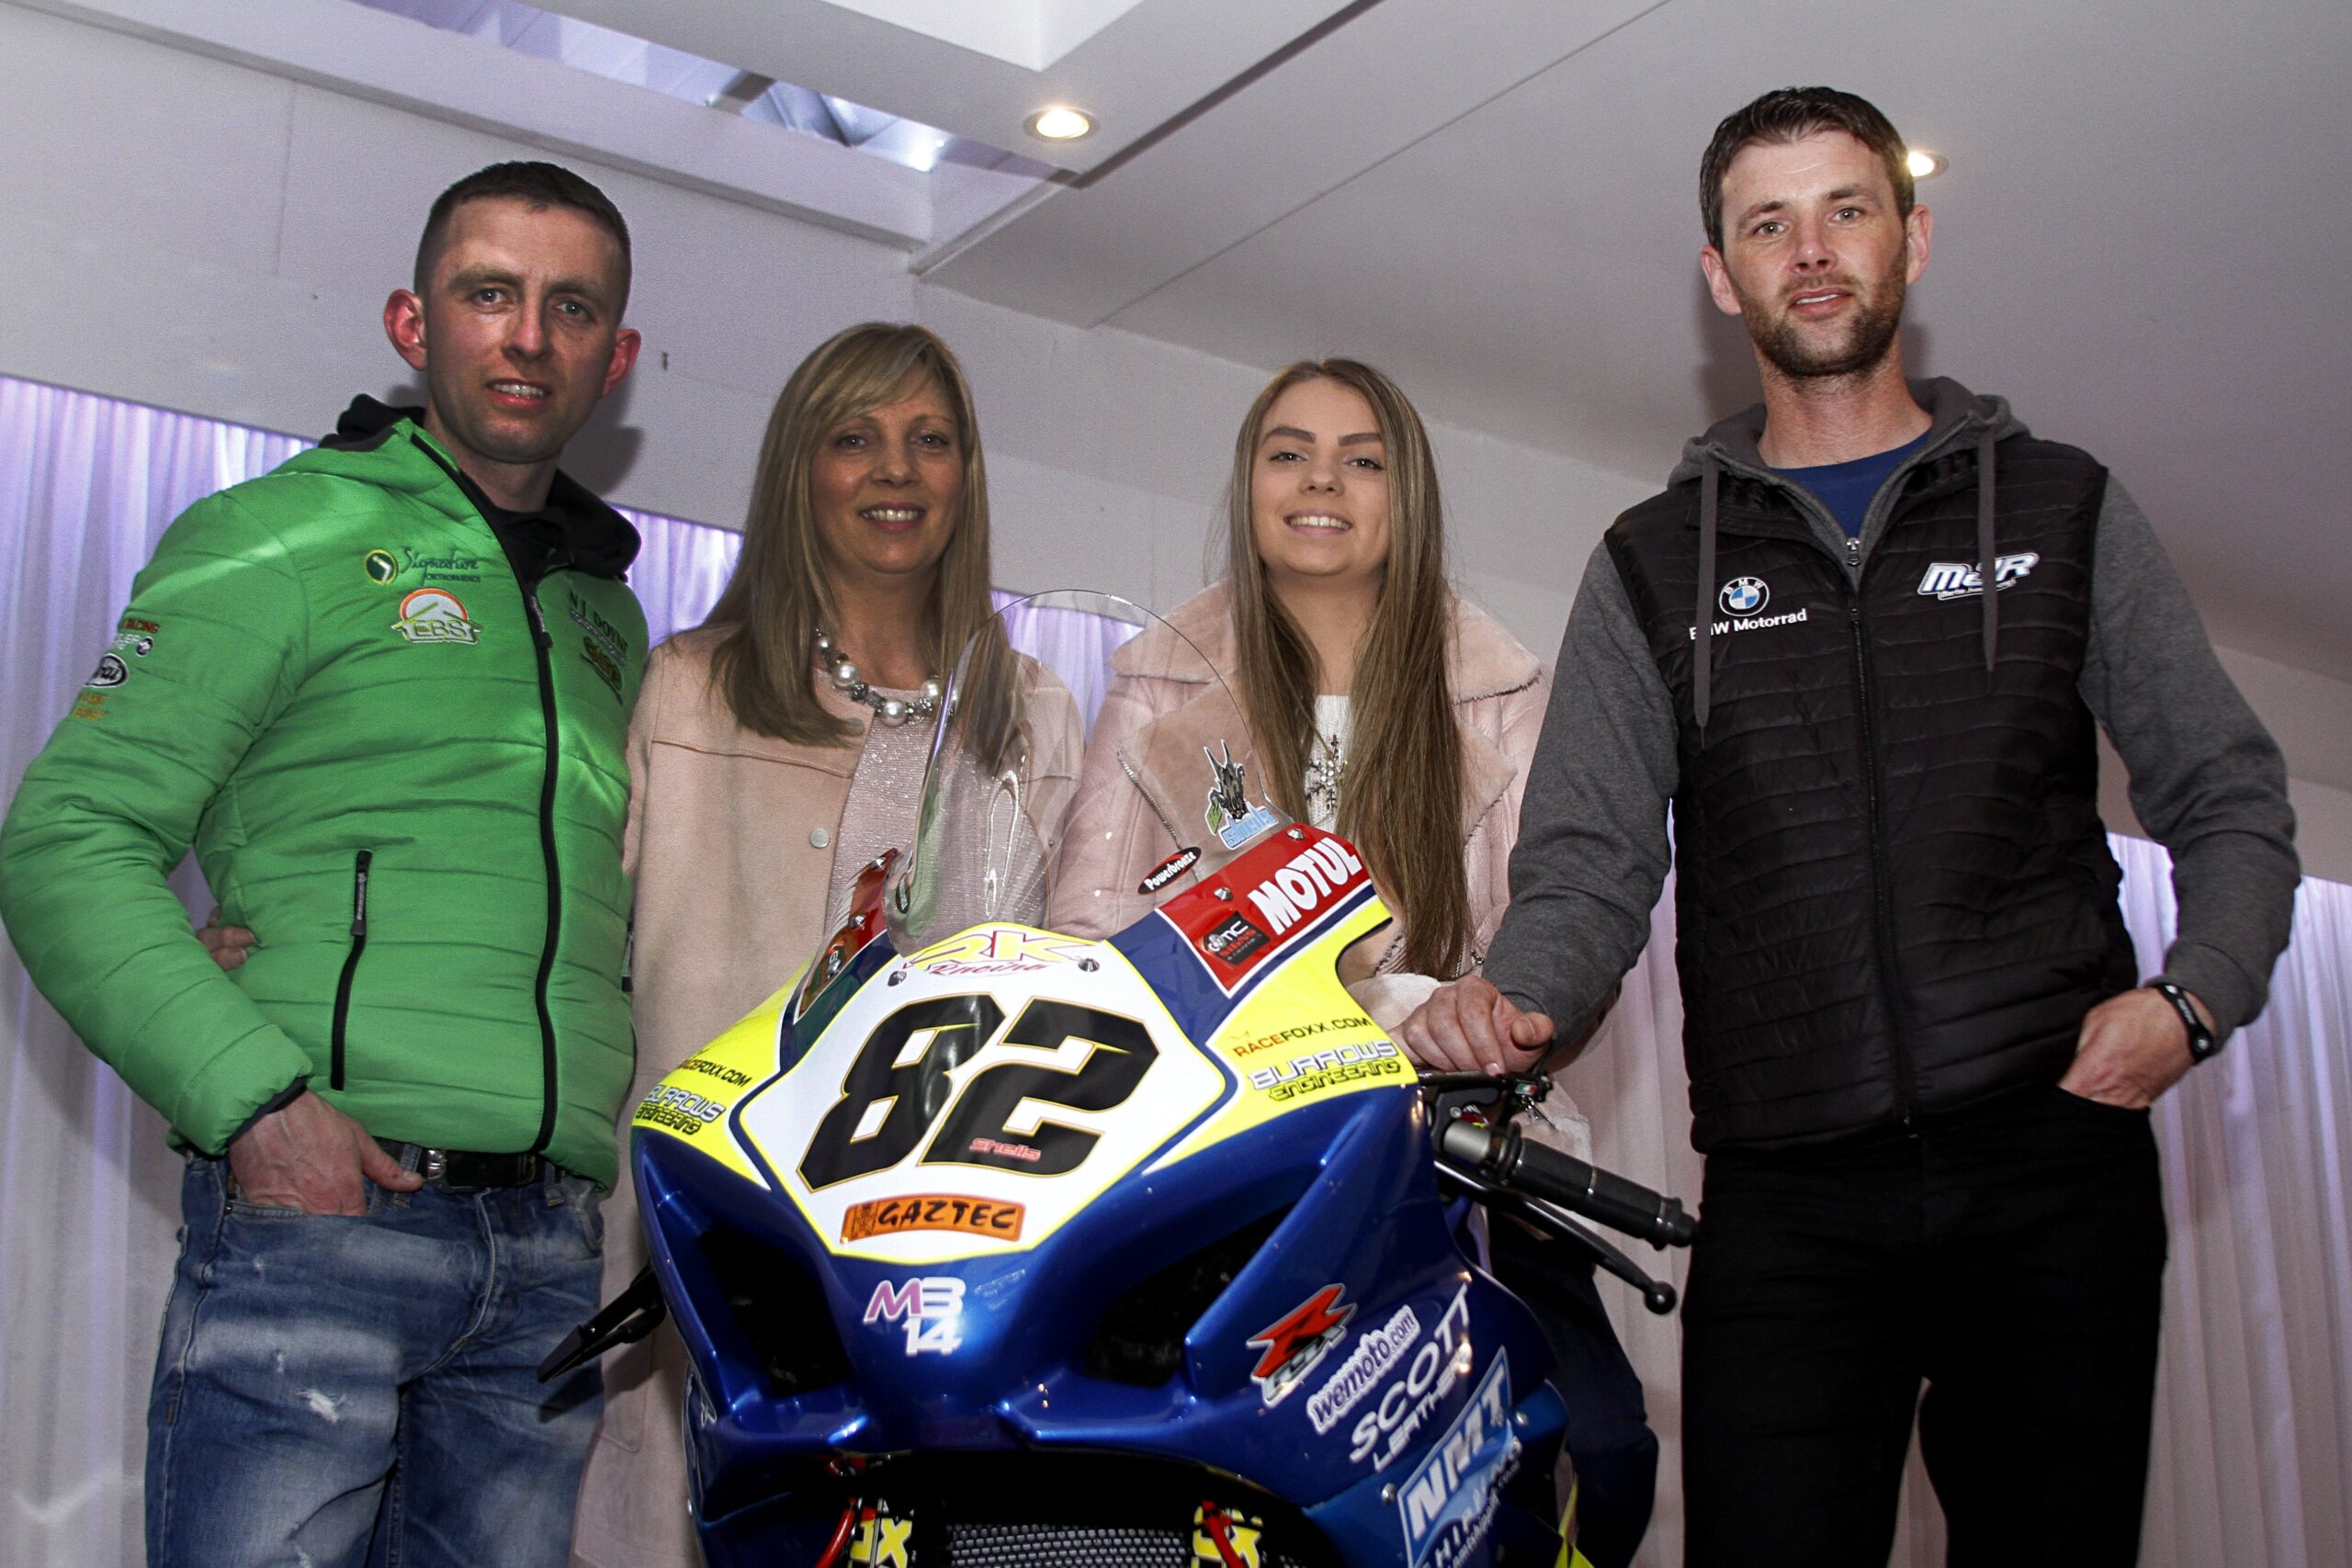 Great Day Of Entertainment On The Horizon At Cookstown Motorcycle Show